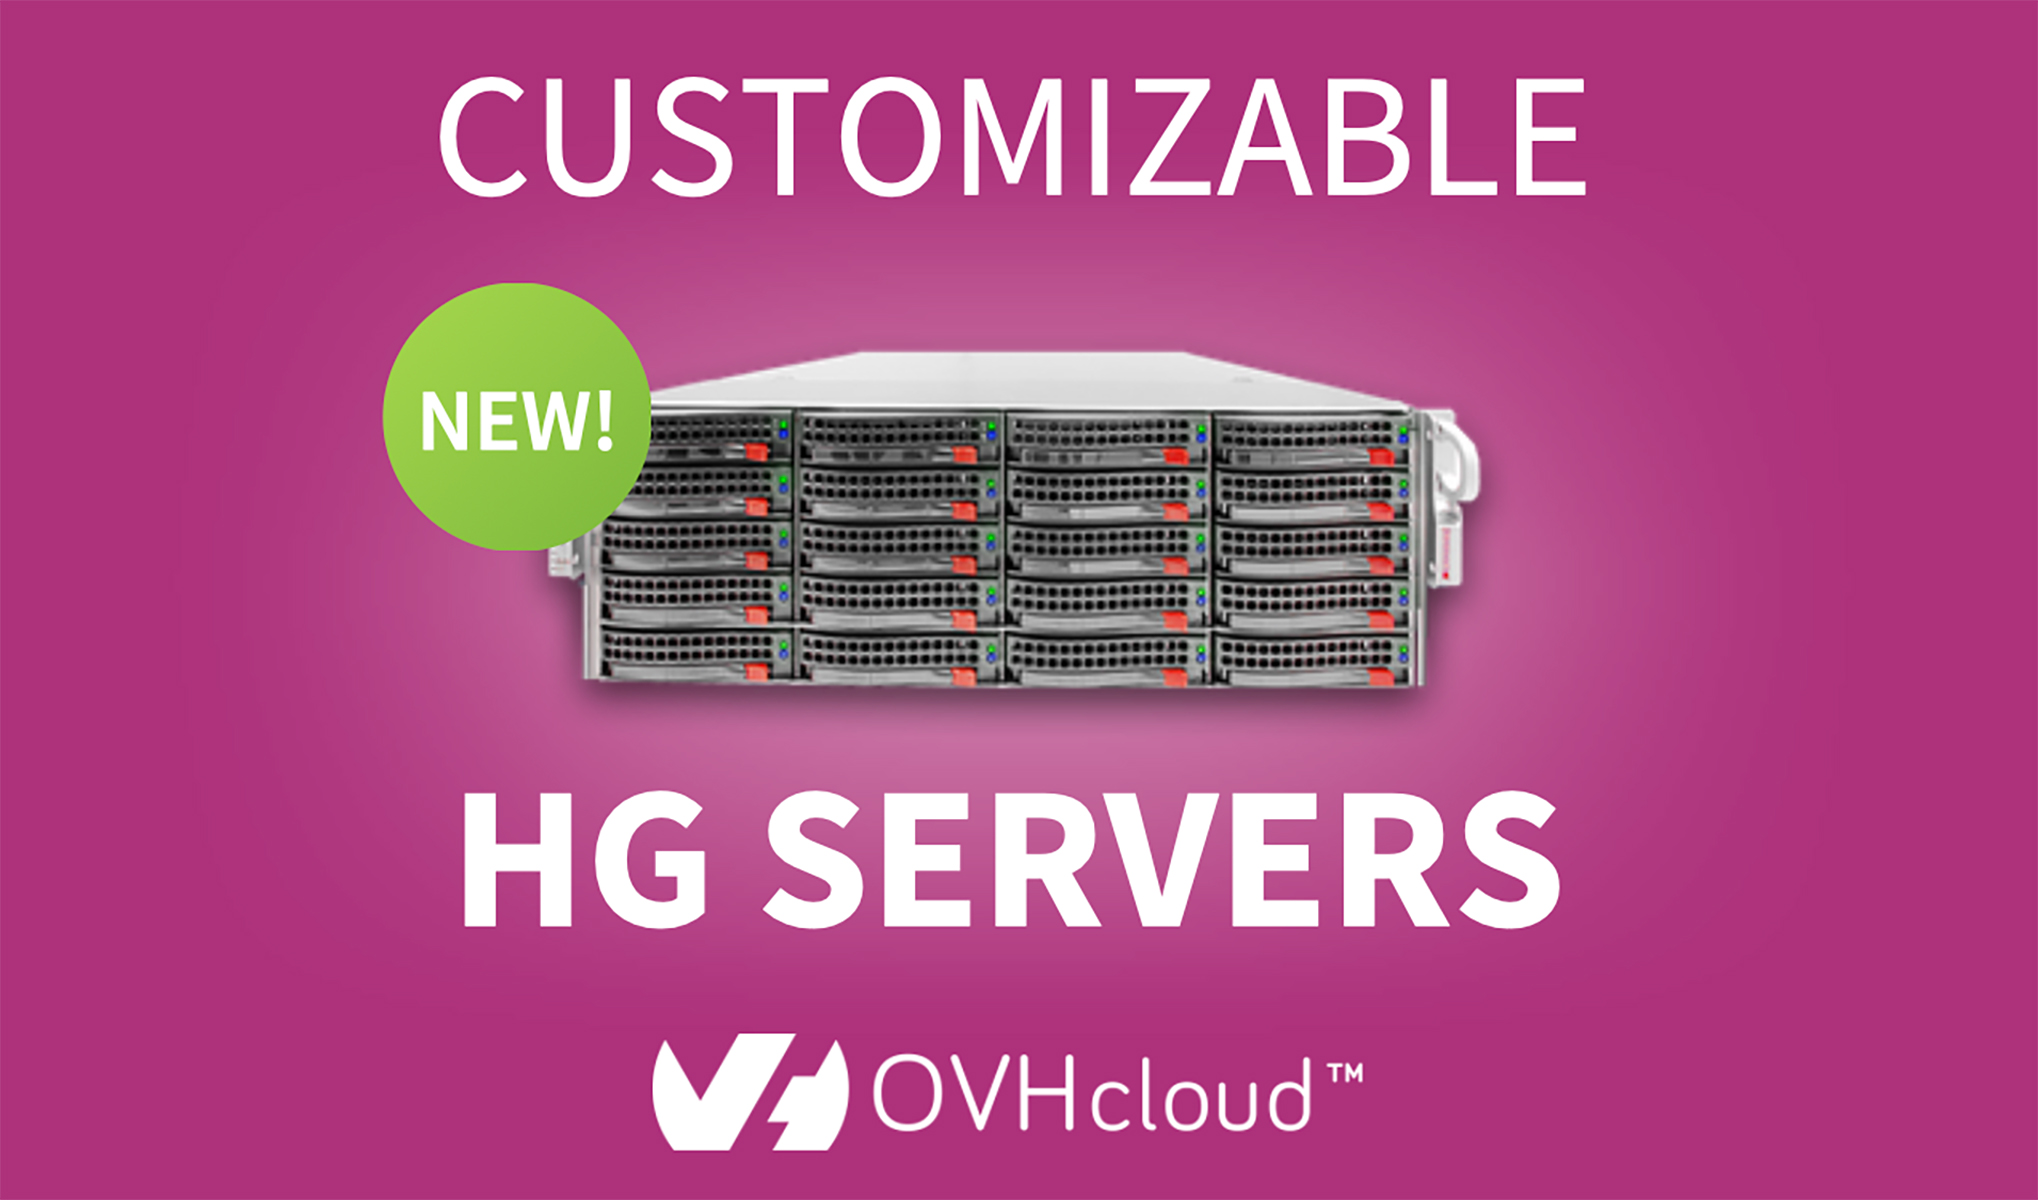 Customizable HG Servers